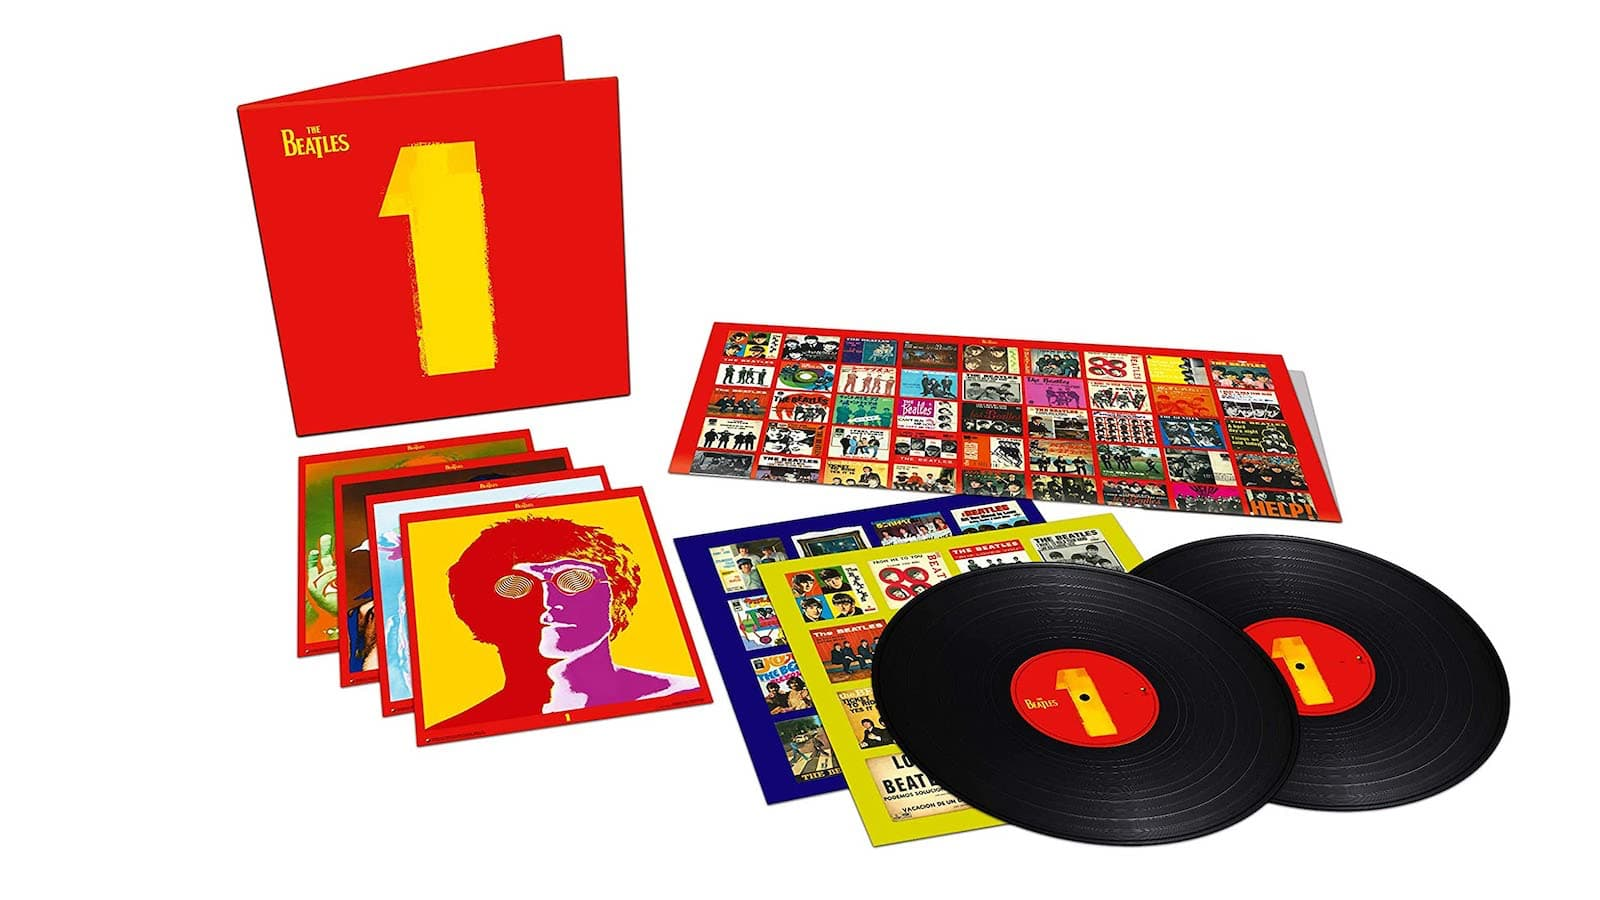 The Beatles 1 album set